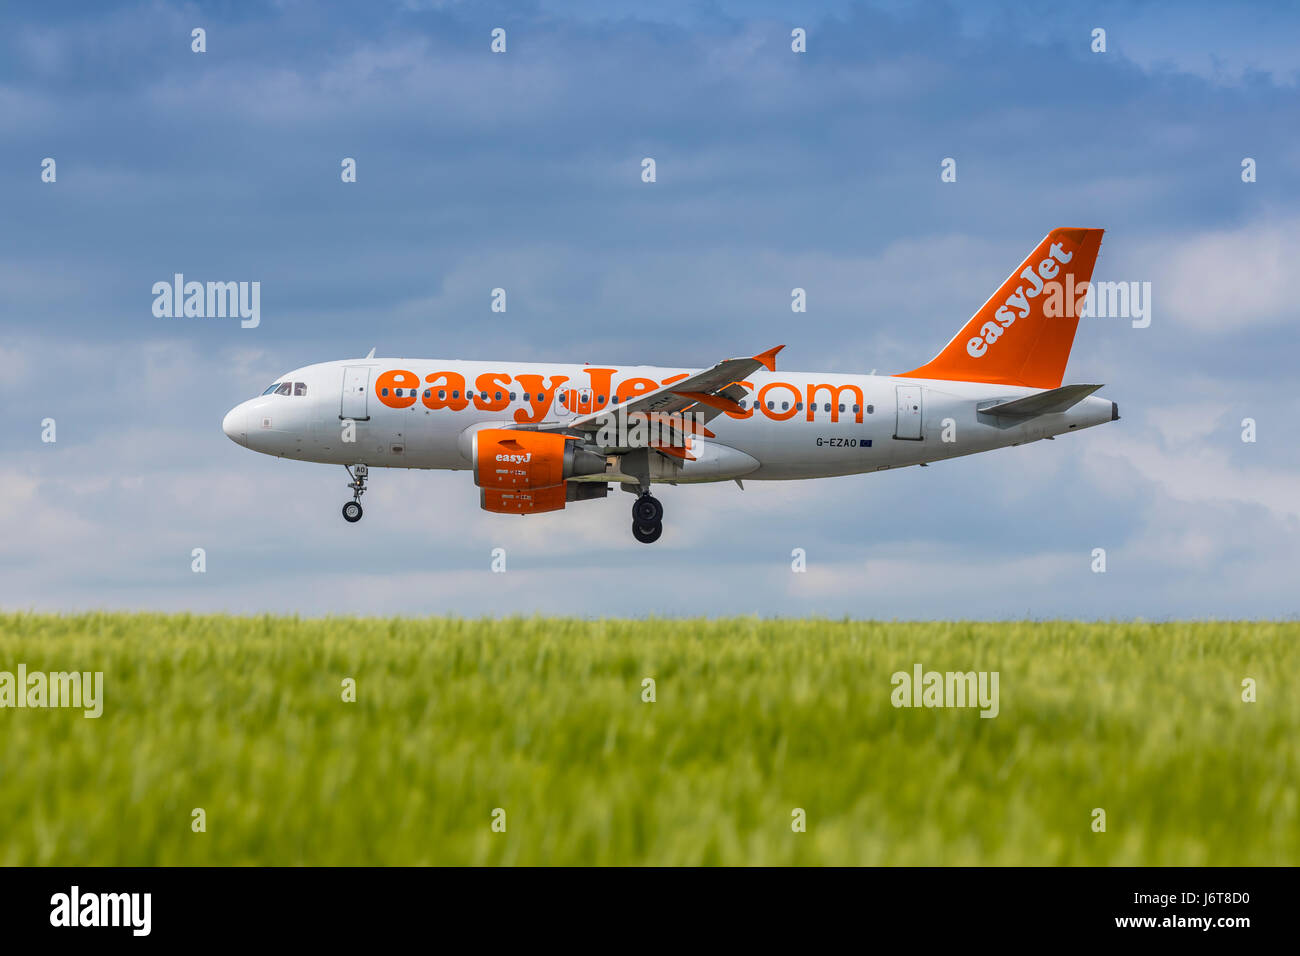 easyJet Airbus A319 registration G-EZAO landing on May 21st 2017 at London Luton Airport, Bedfordshire, UK - Stock Image